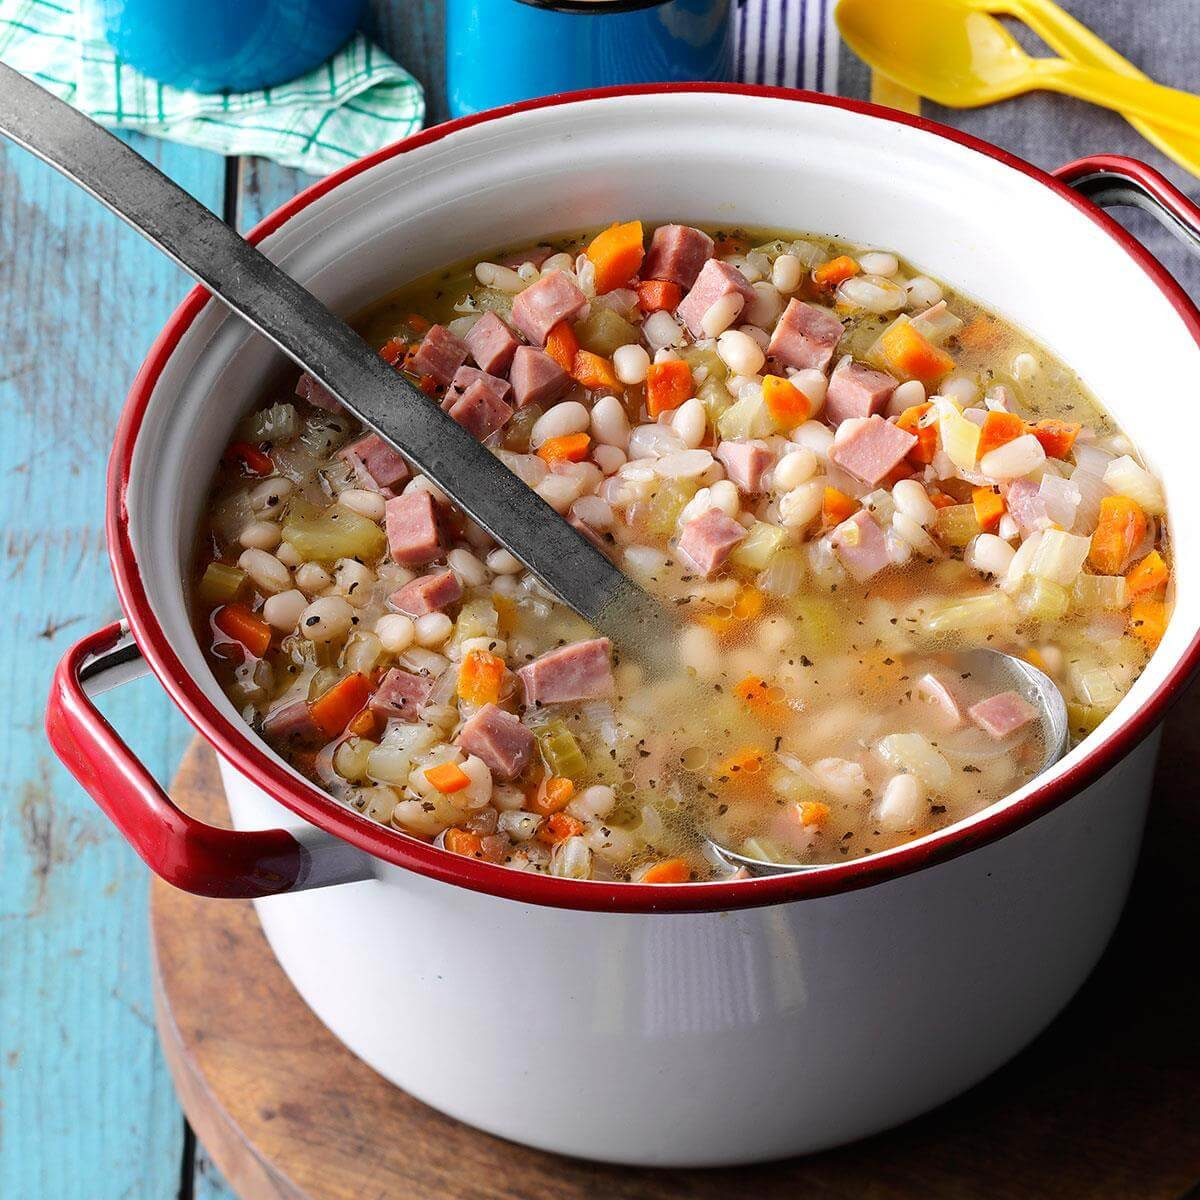 12 Easy Recipes For Camping: 15 Dutch Oven Camping Recipes To Make Over The Fire